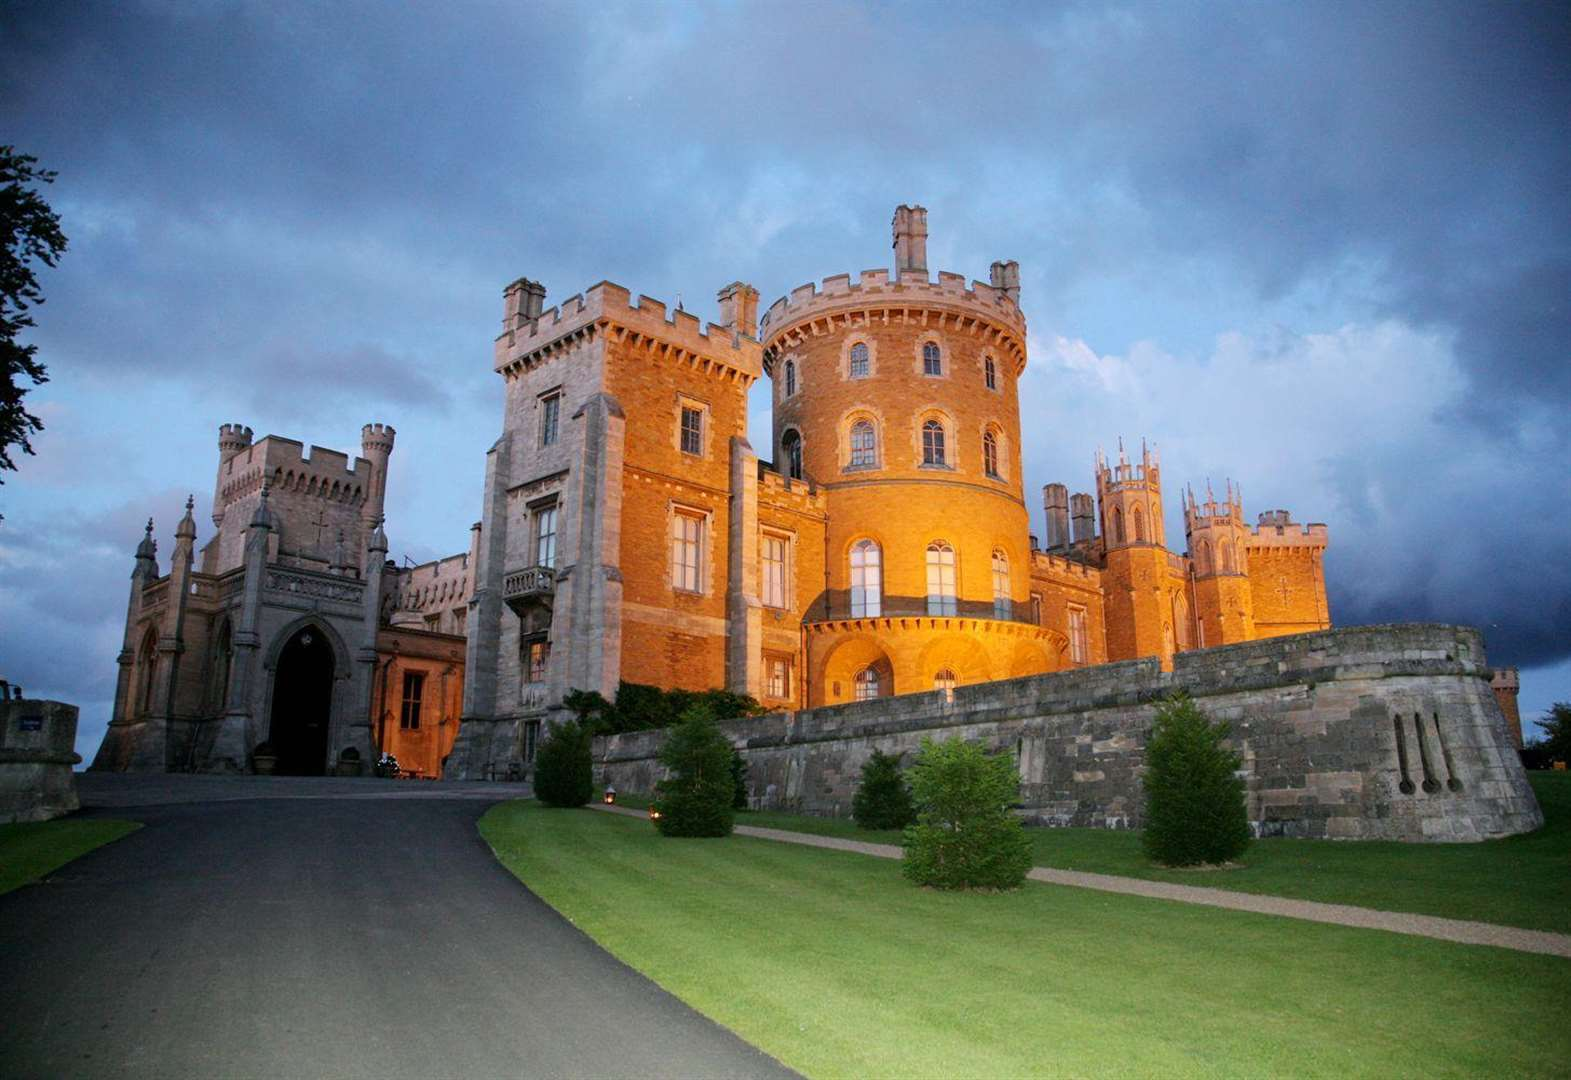 Dare to walk the dooms at Belvoir Castle's Halloween fright night